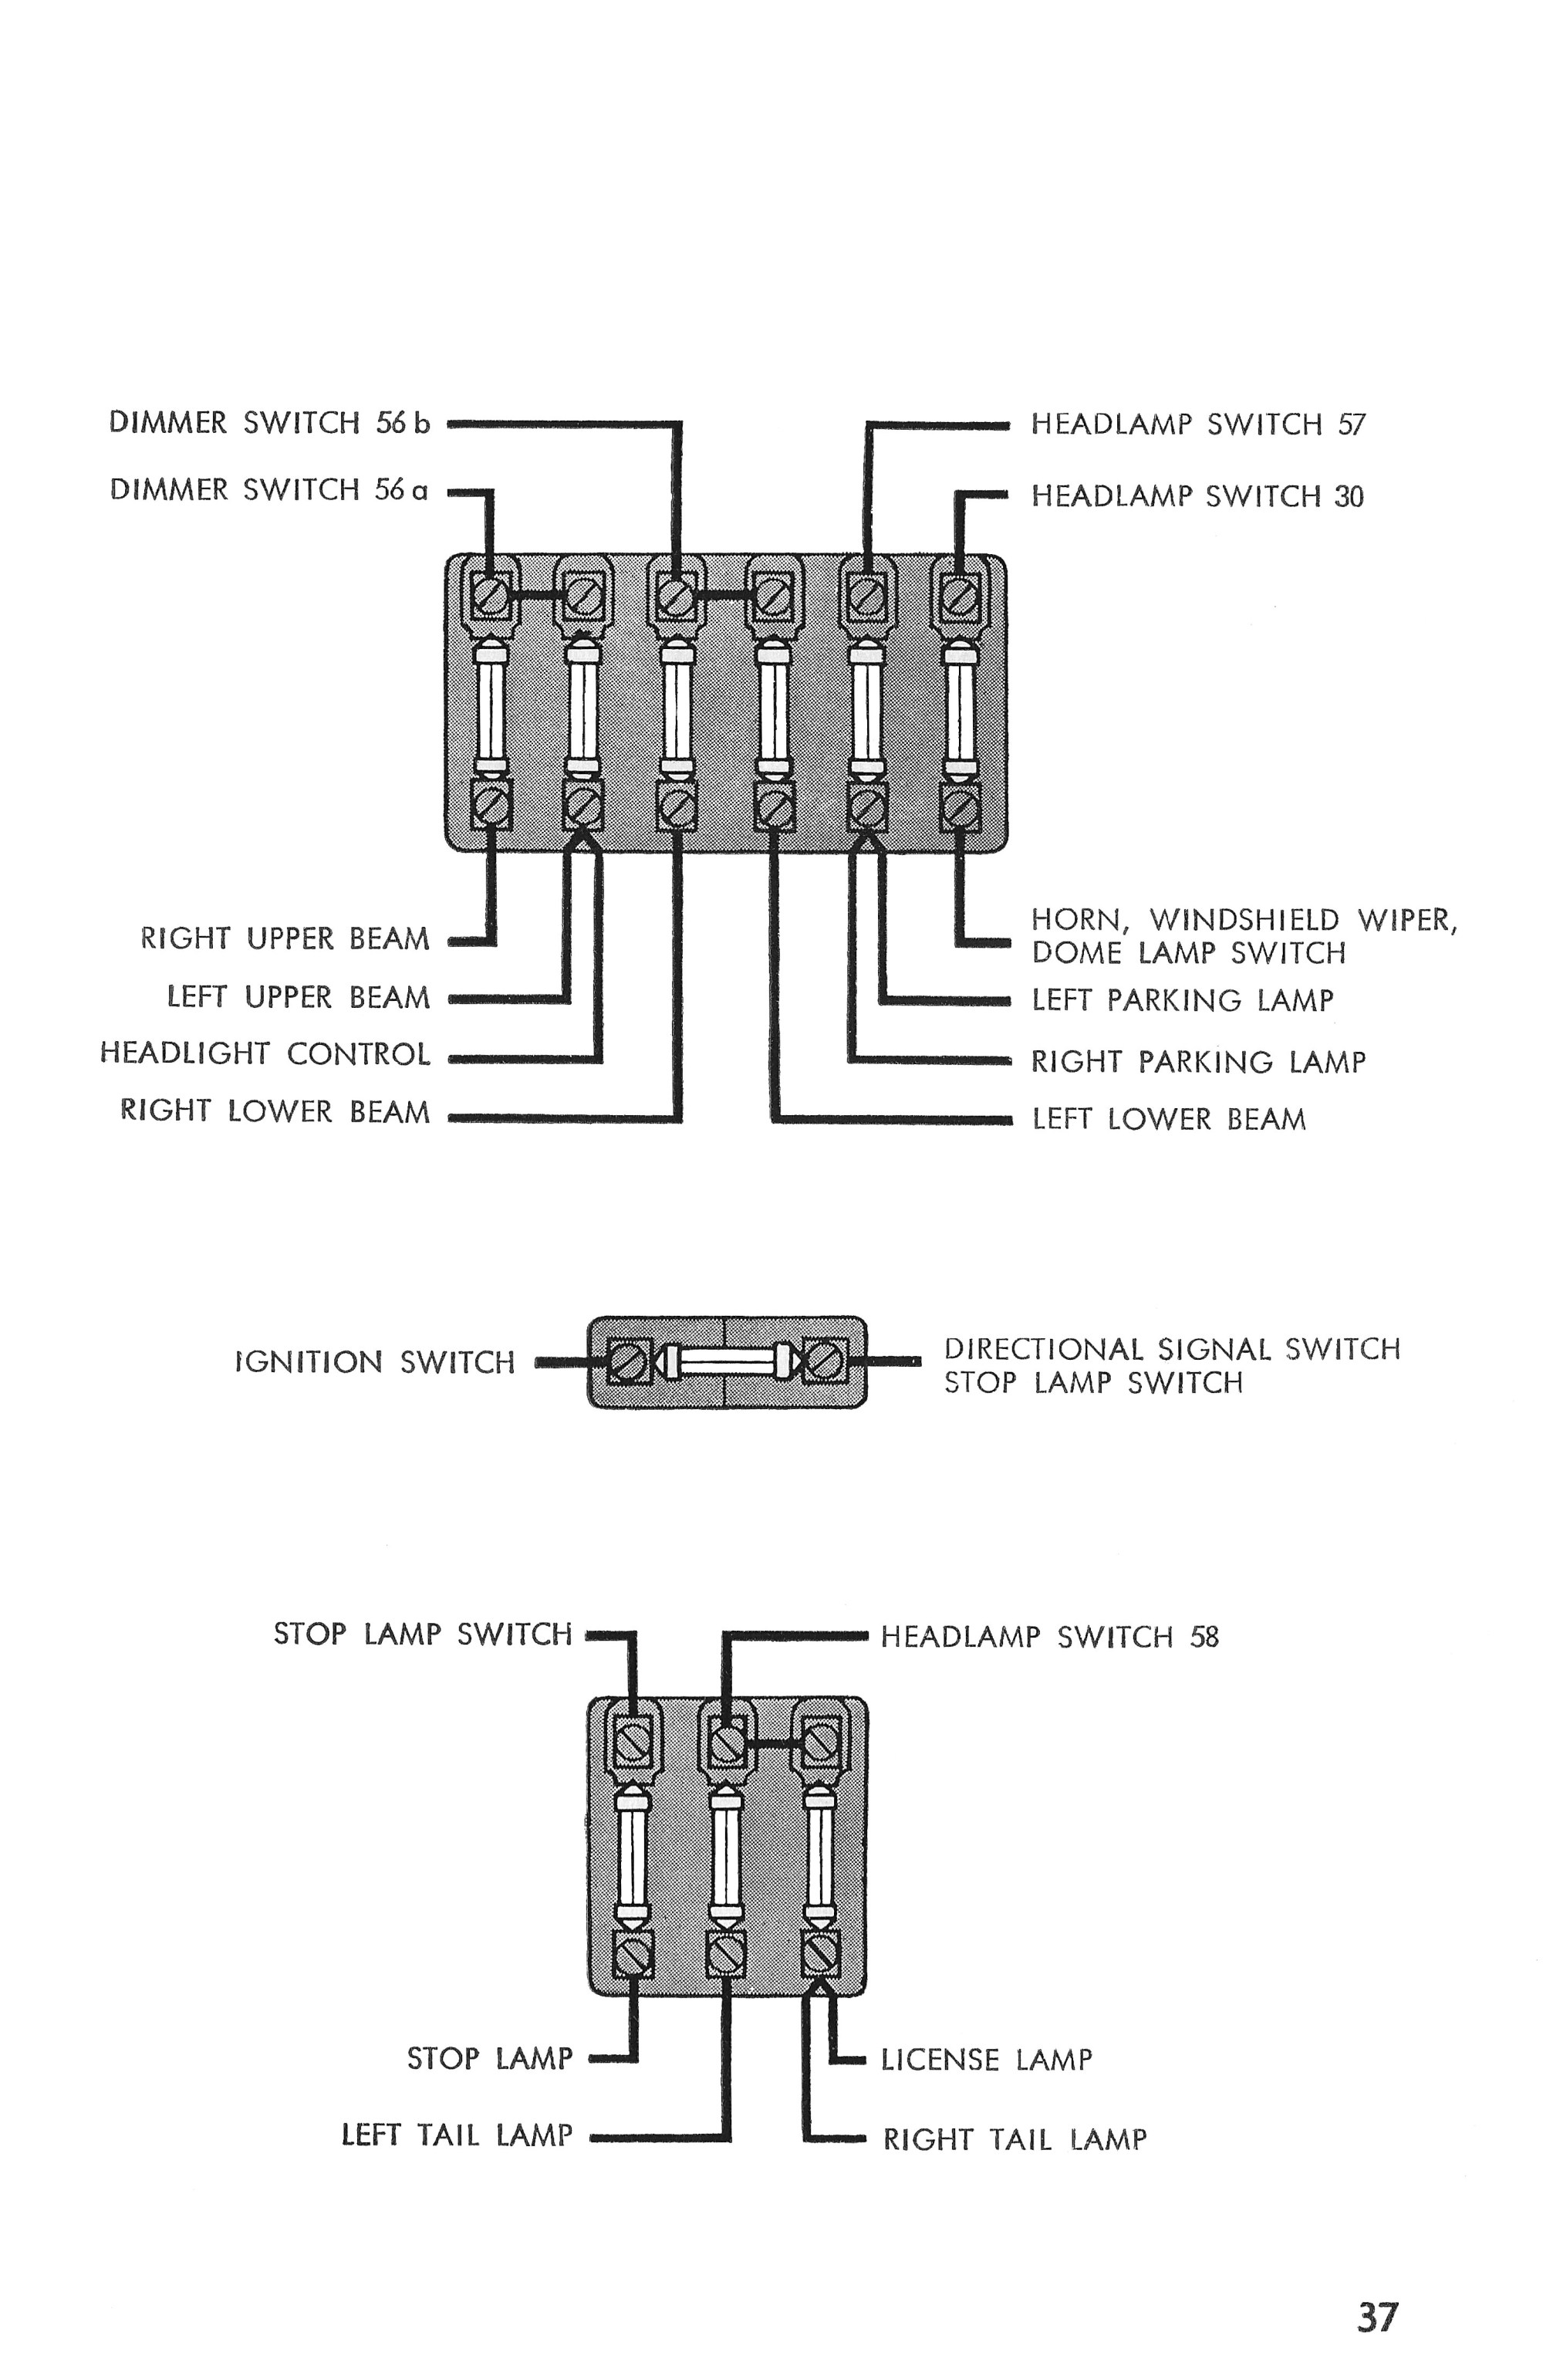 hight resolution of thesamba com type 1 wiring diagrams 2003 f250 fuse panel wiring diagram fuse panel wiring diagram